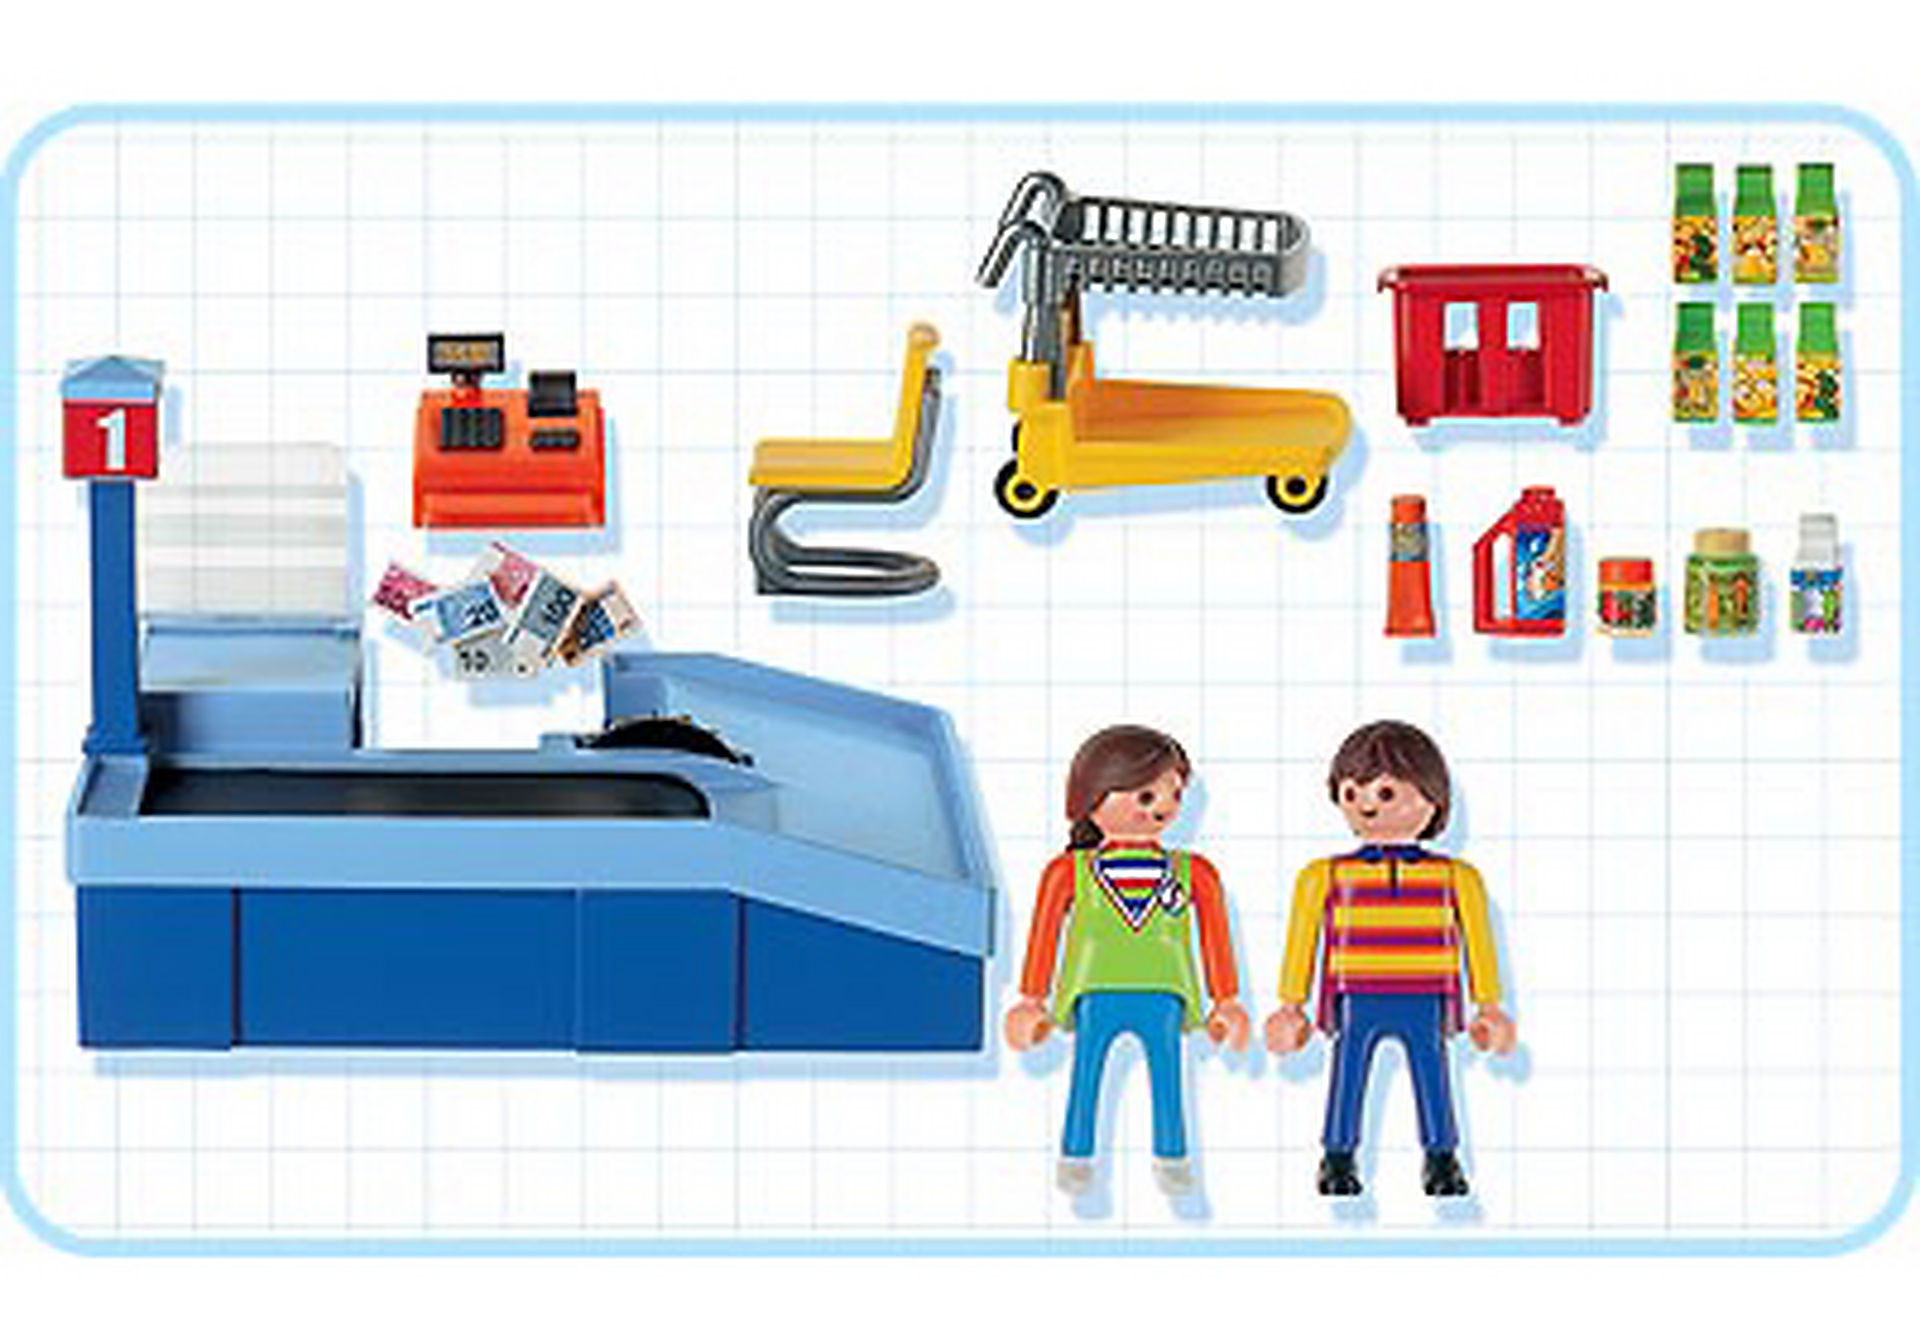 http://media.playmobil.com/i/playmobil/3201-C_product_box_back/Caissiere/caisse enregistreuse